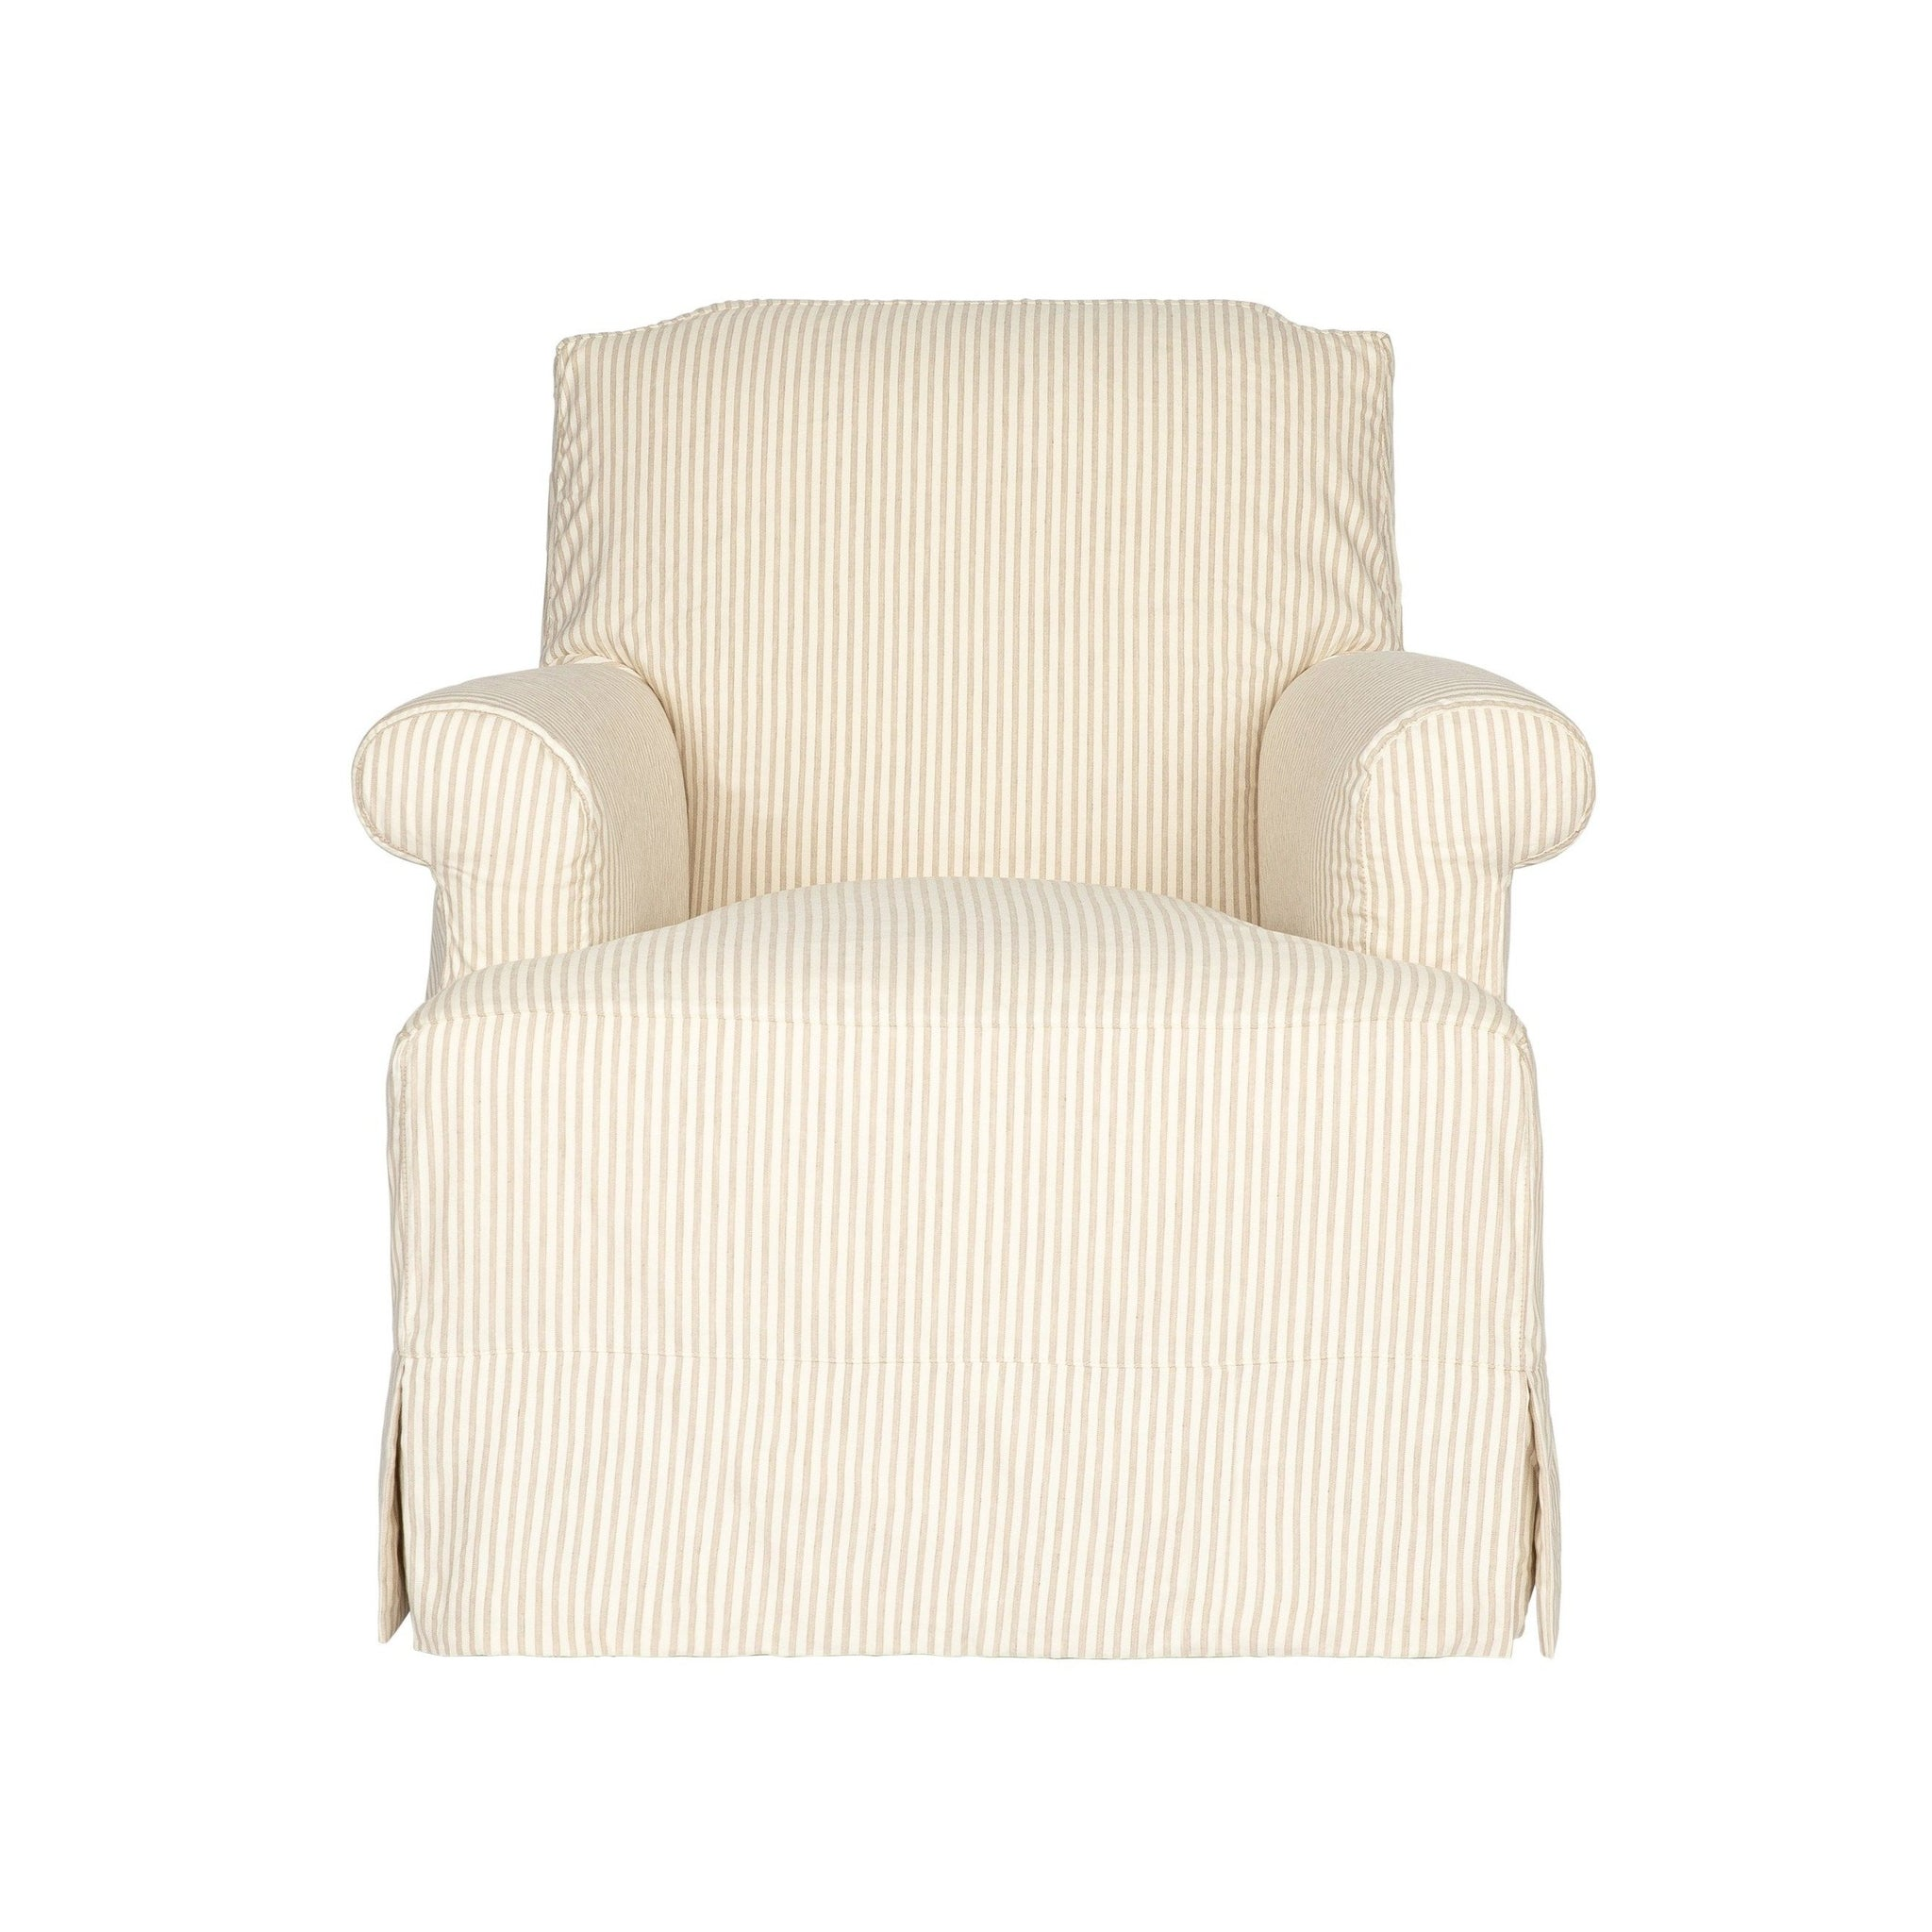 Malibu Swivel Chair